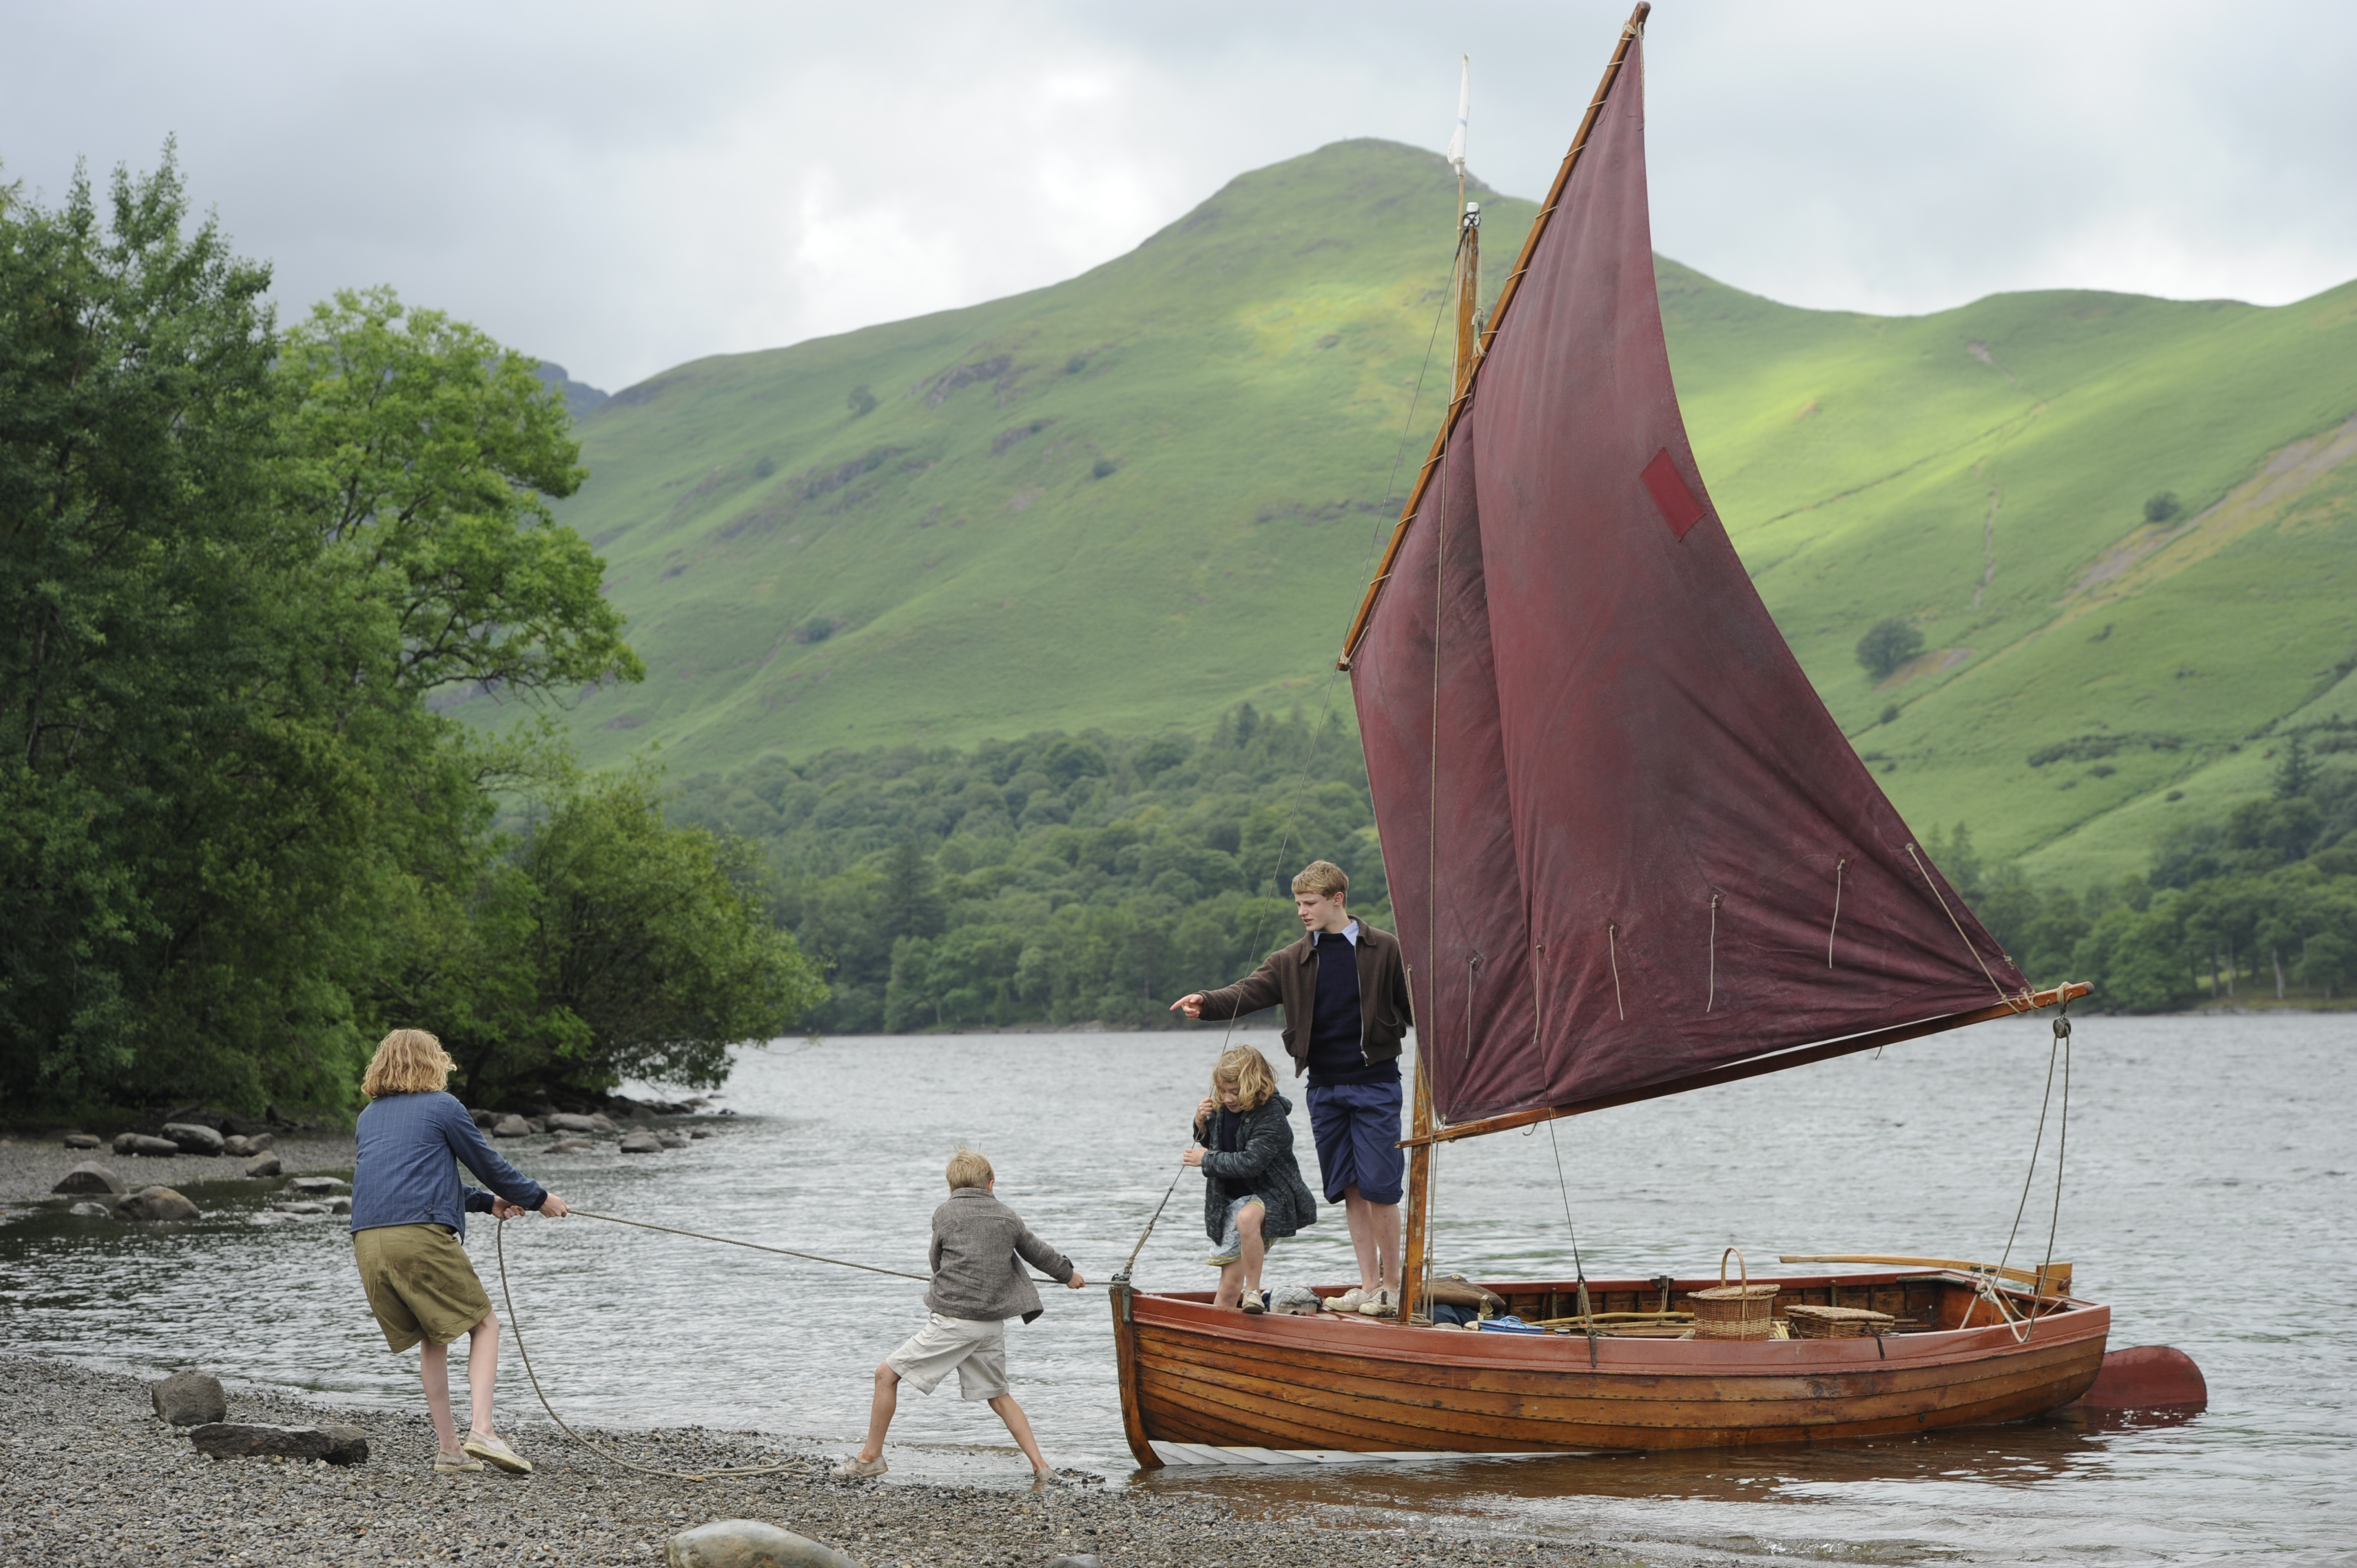 Trailer for the new Swallows and Amazons film